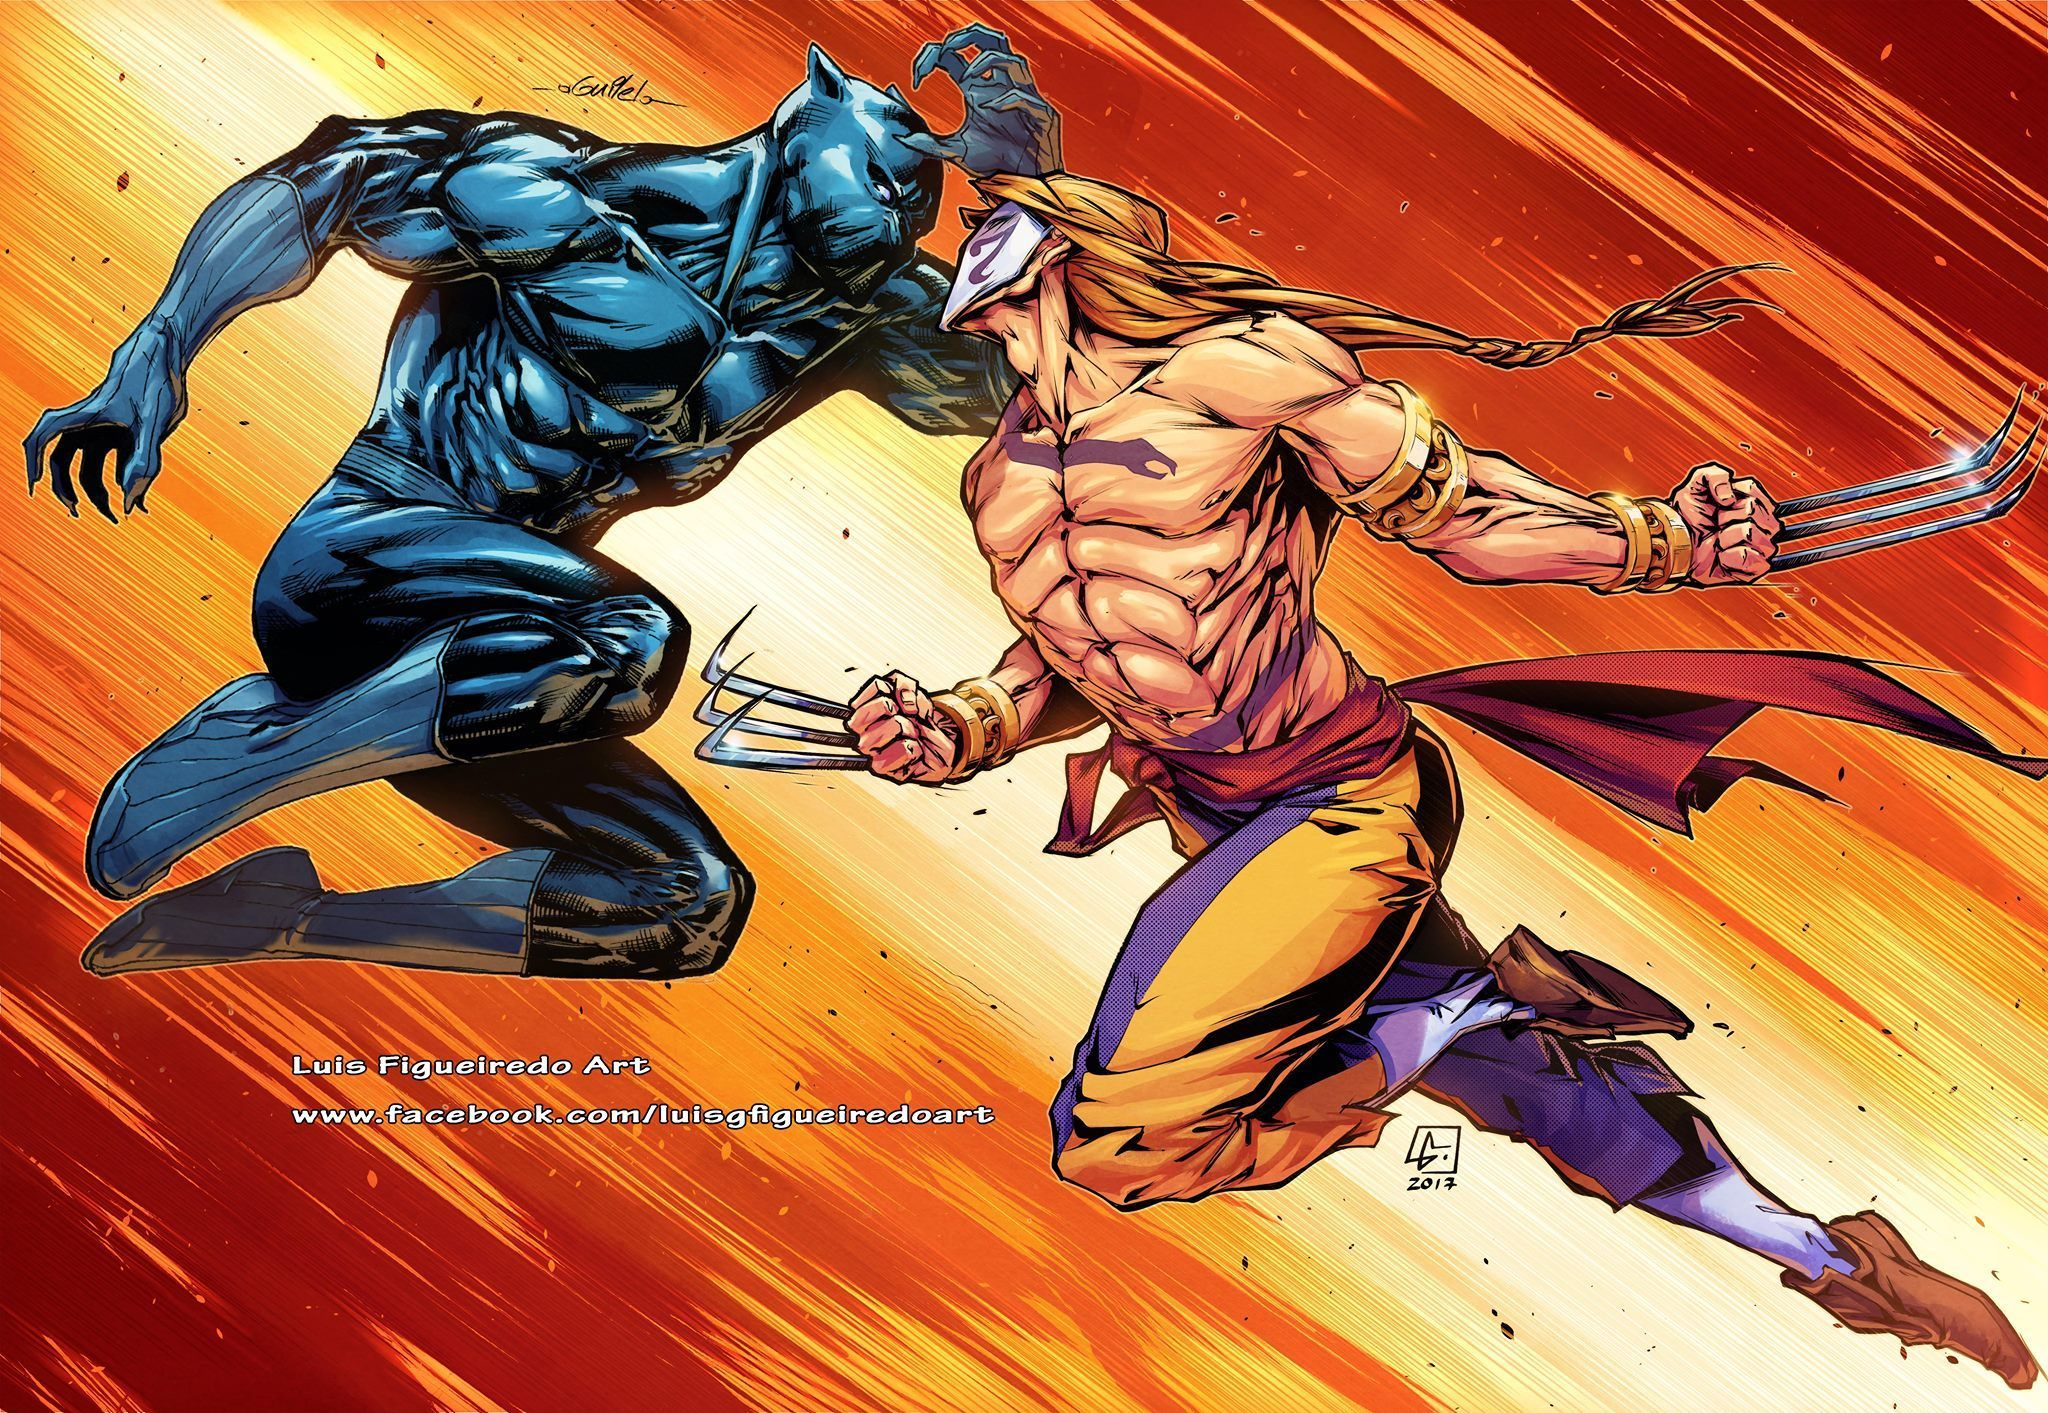 Vega Vs Black Panther T Challa Street Fighter Art Black Panther Black Panther Art